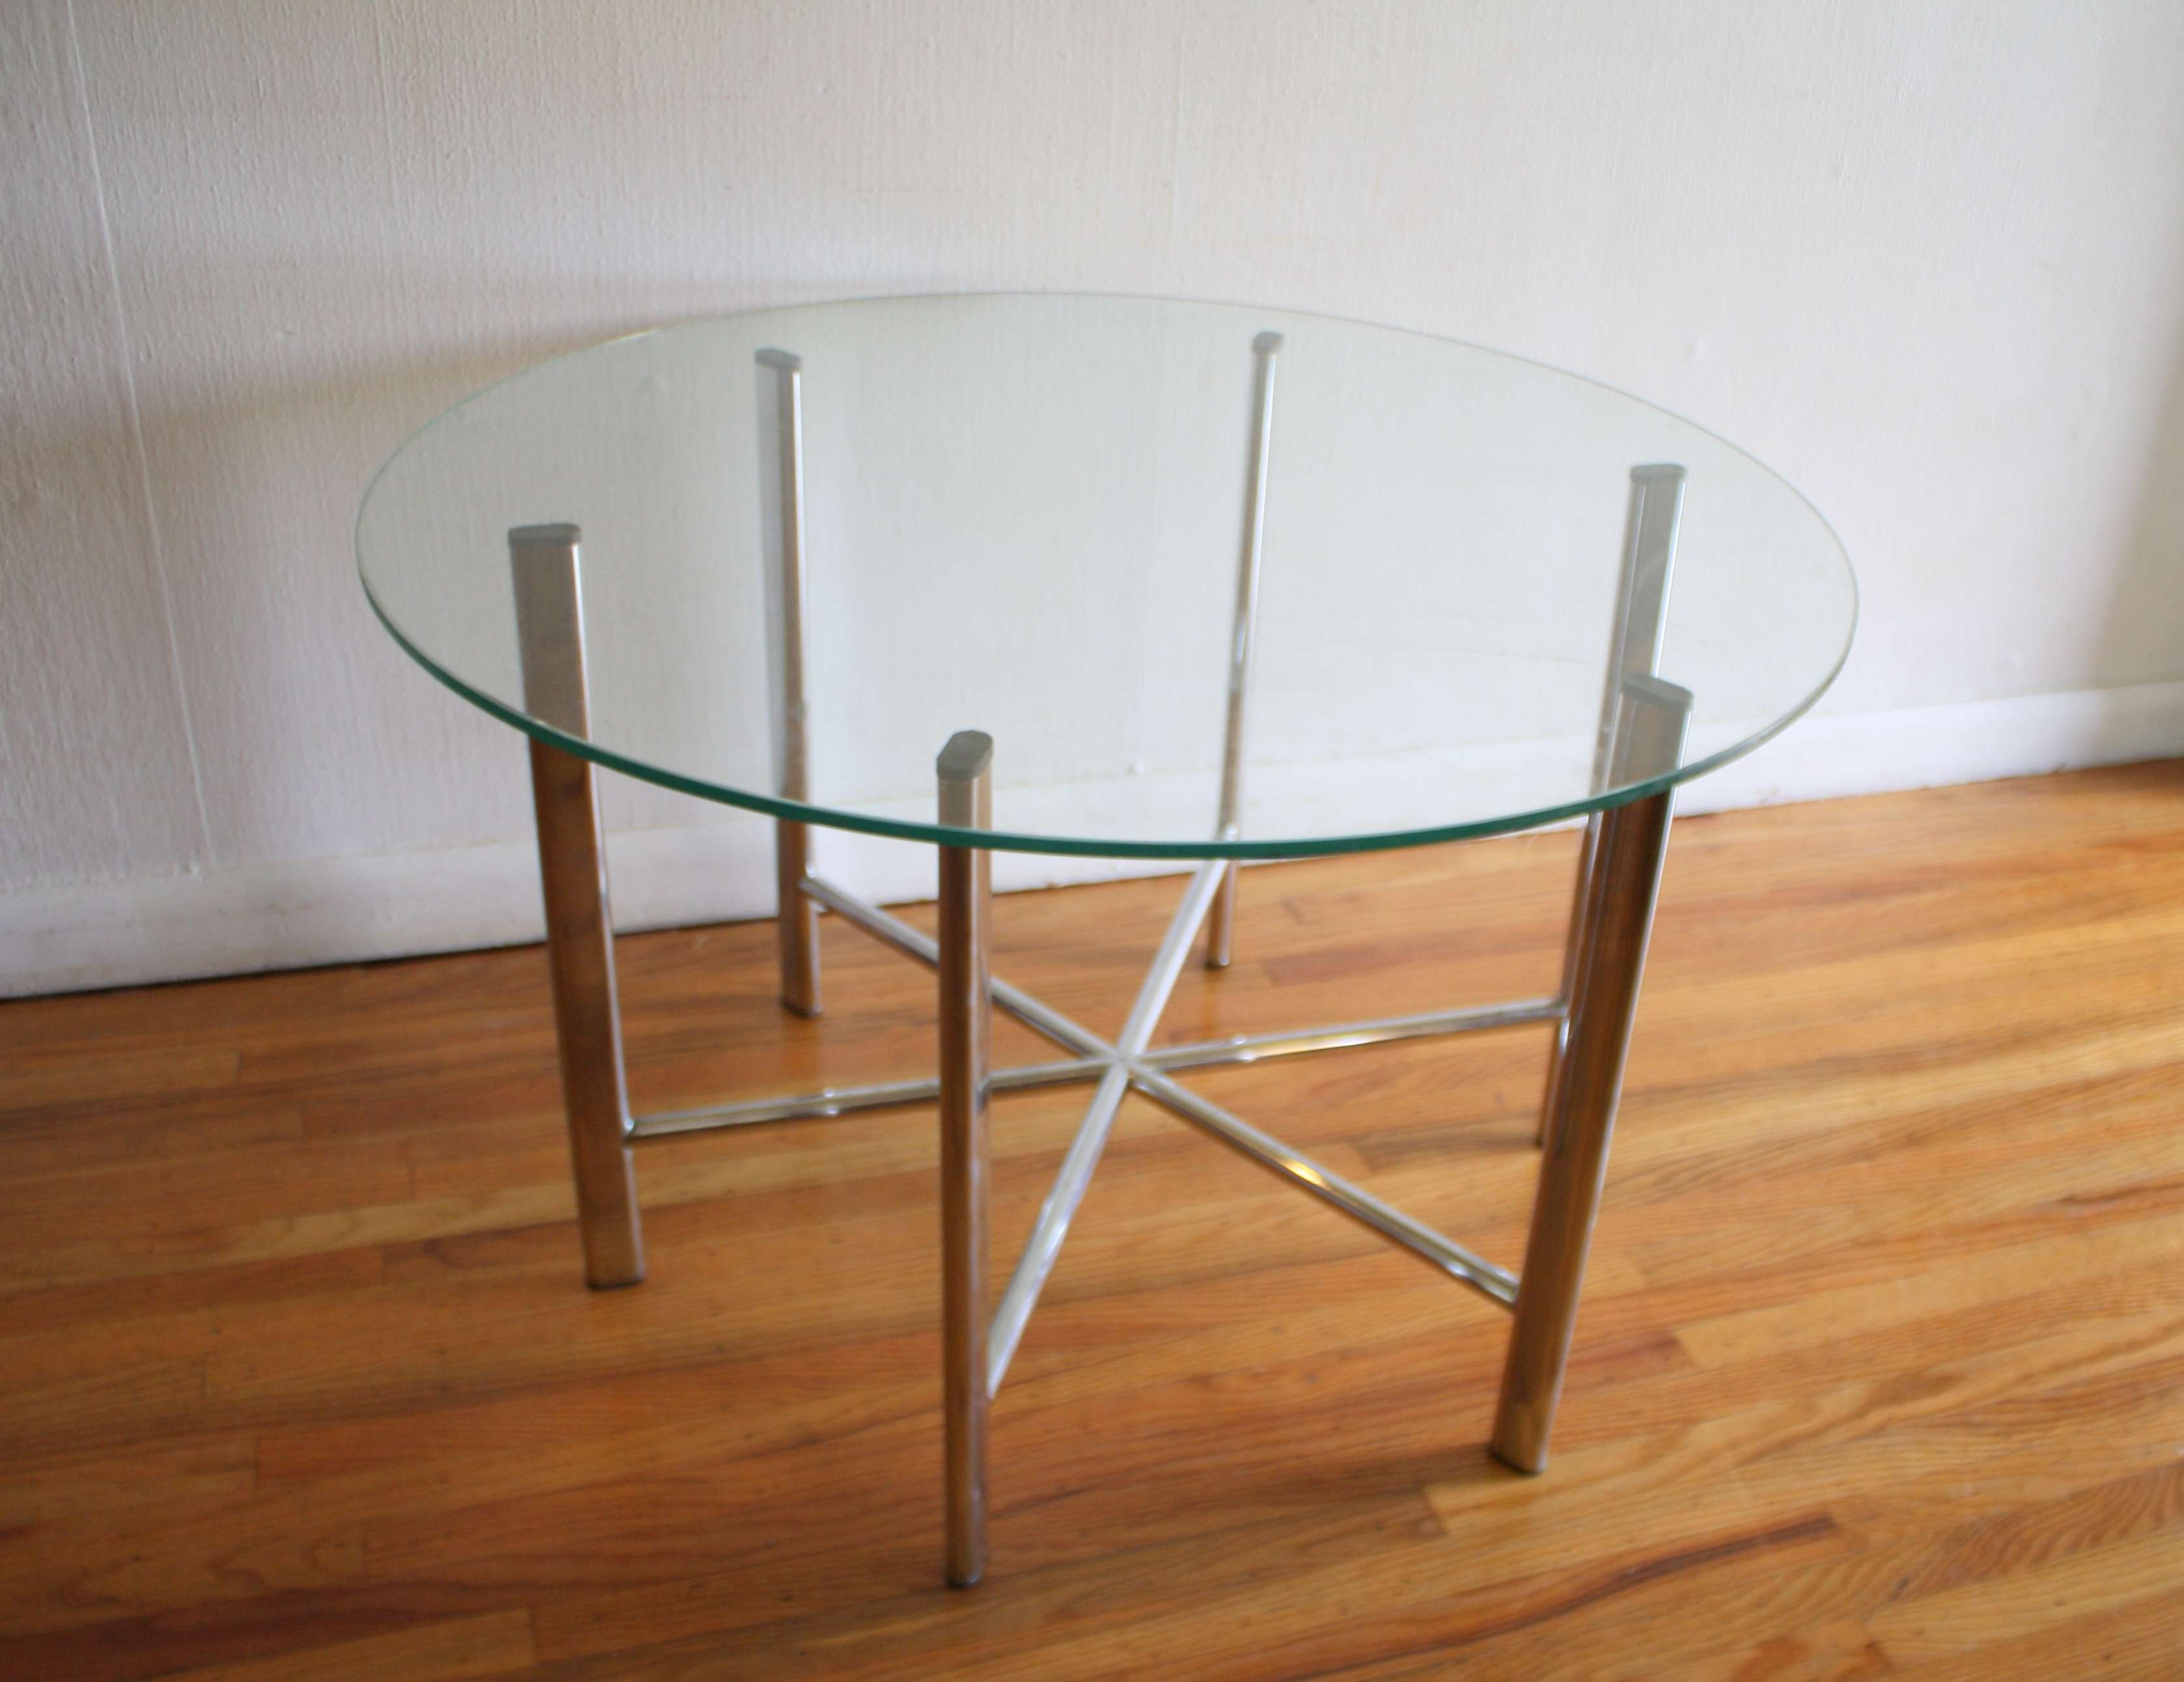 Amazing Elephant Glass Coffee Table – Mediasupload Regarding Best And Newest Elephant Glass Coffee Tables (Gallery 4 of 20)